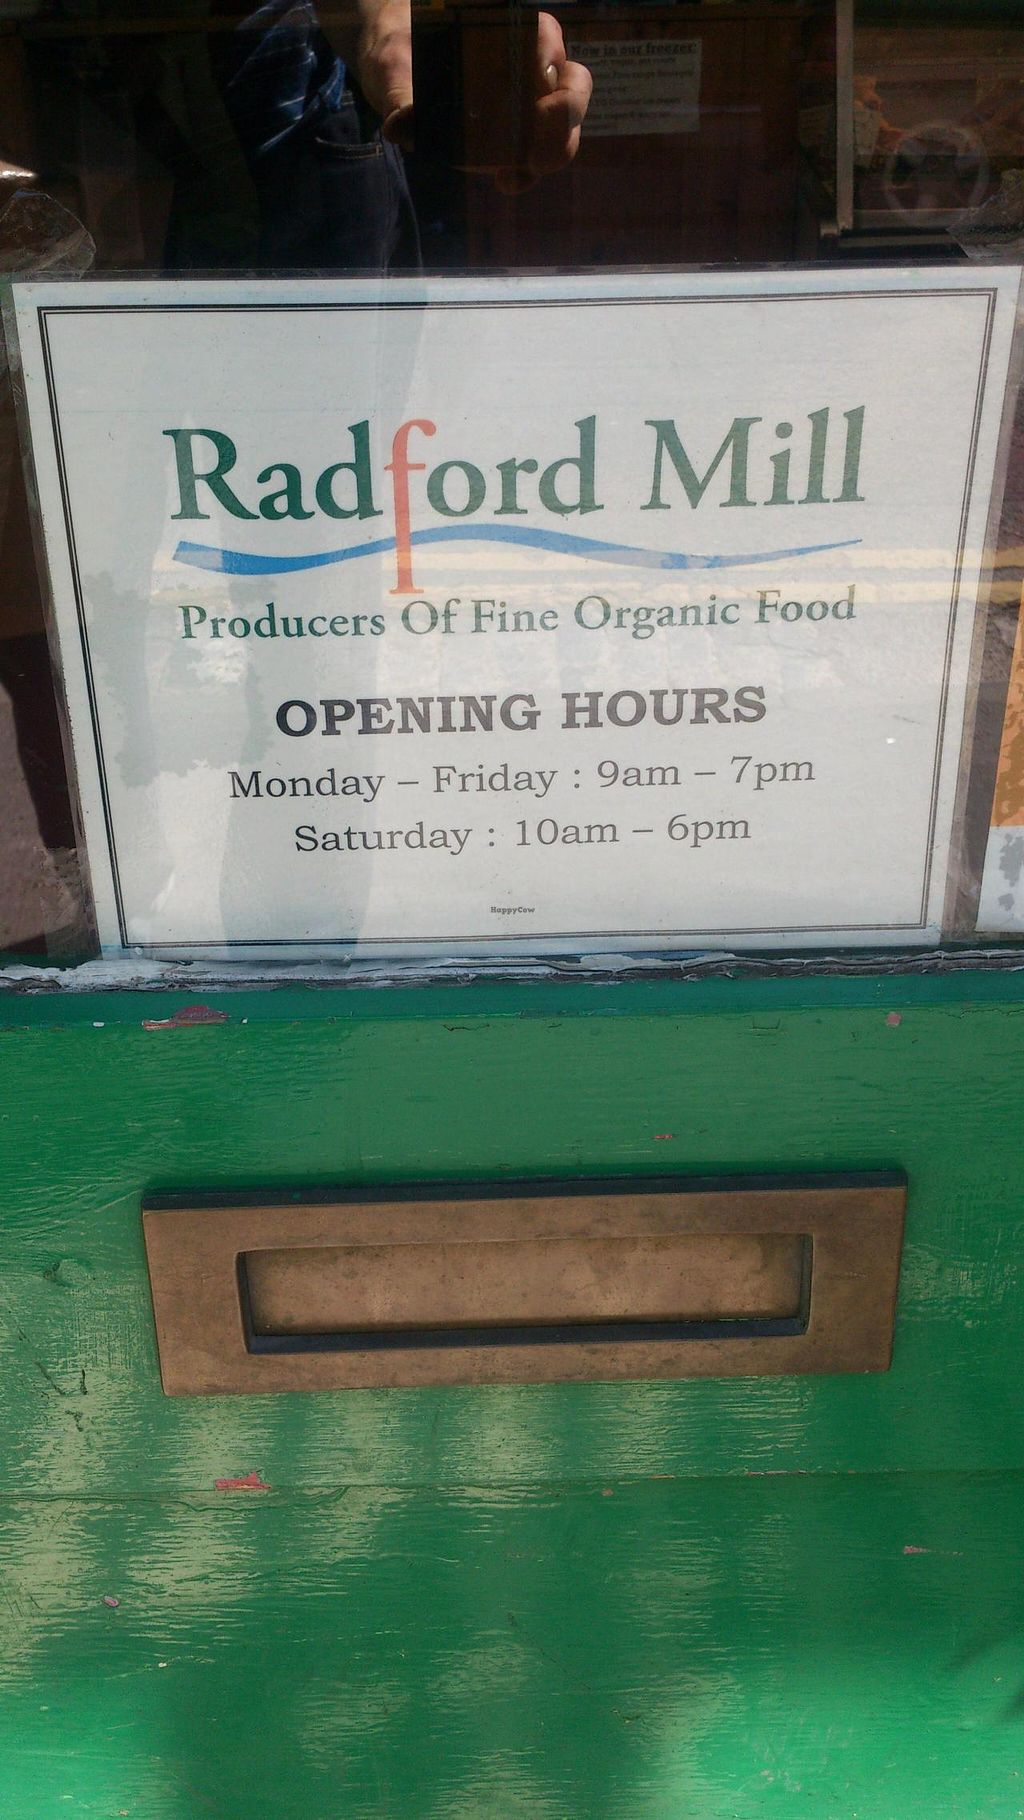 """Photo of Radford Mill Farm Shop  by <a href=""""/members/profile/mthauland"""">mthauland</a> <br/>Opening hours  <br/> July 13, 2014  - <a href='/contact/abuse/image/7436/73998'>Report</a>"""